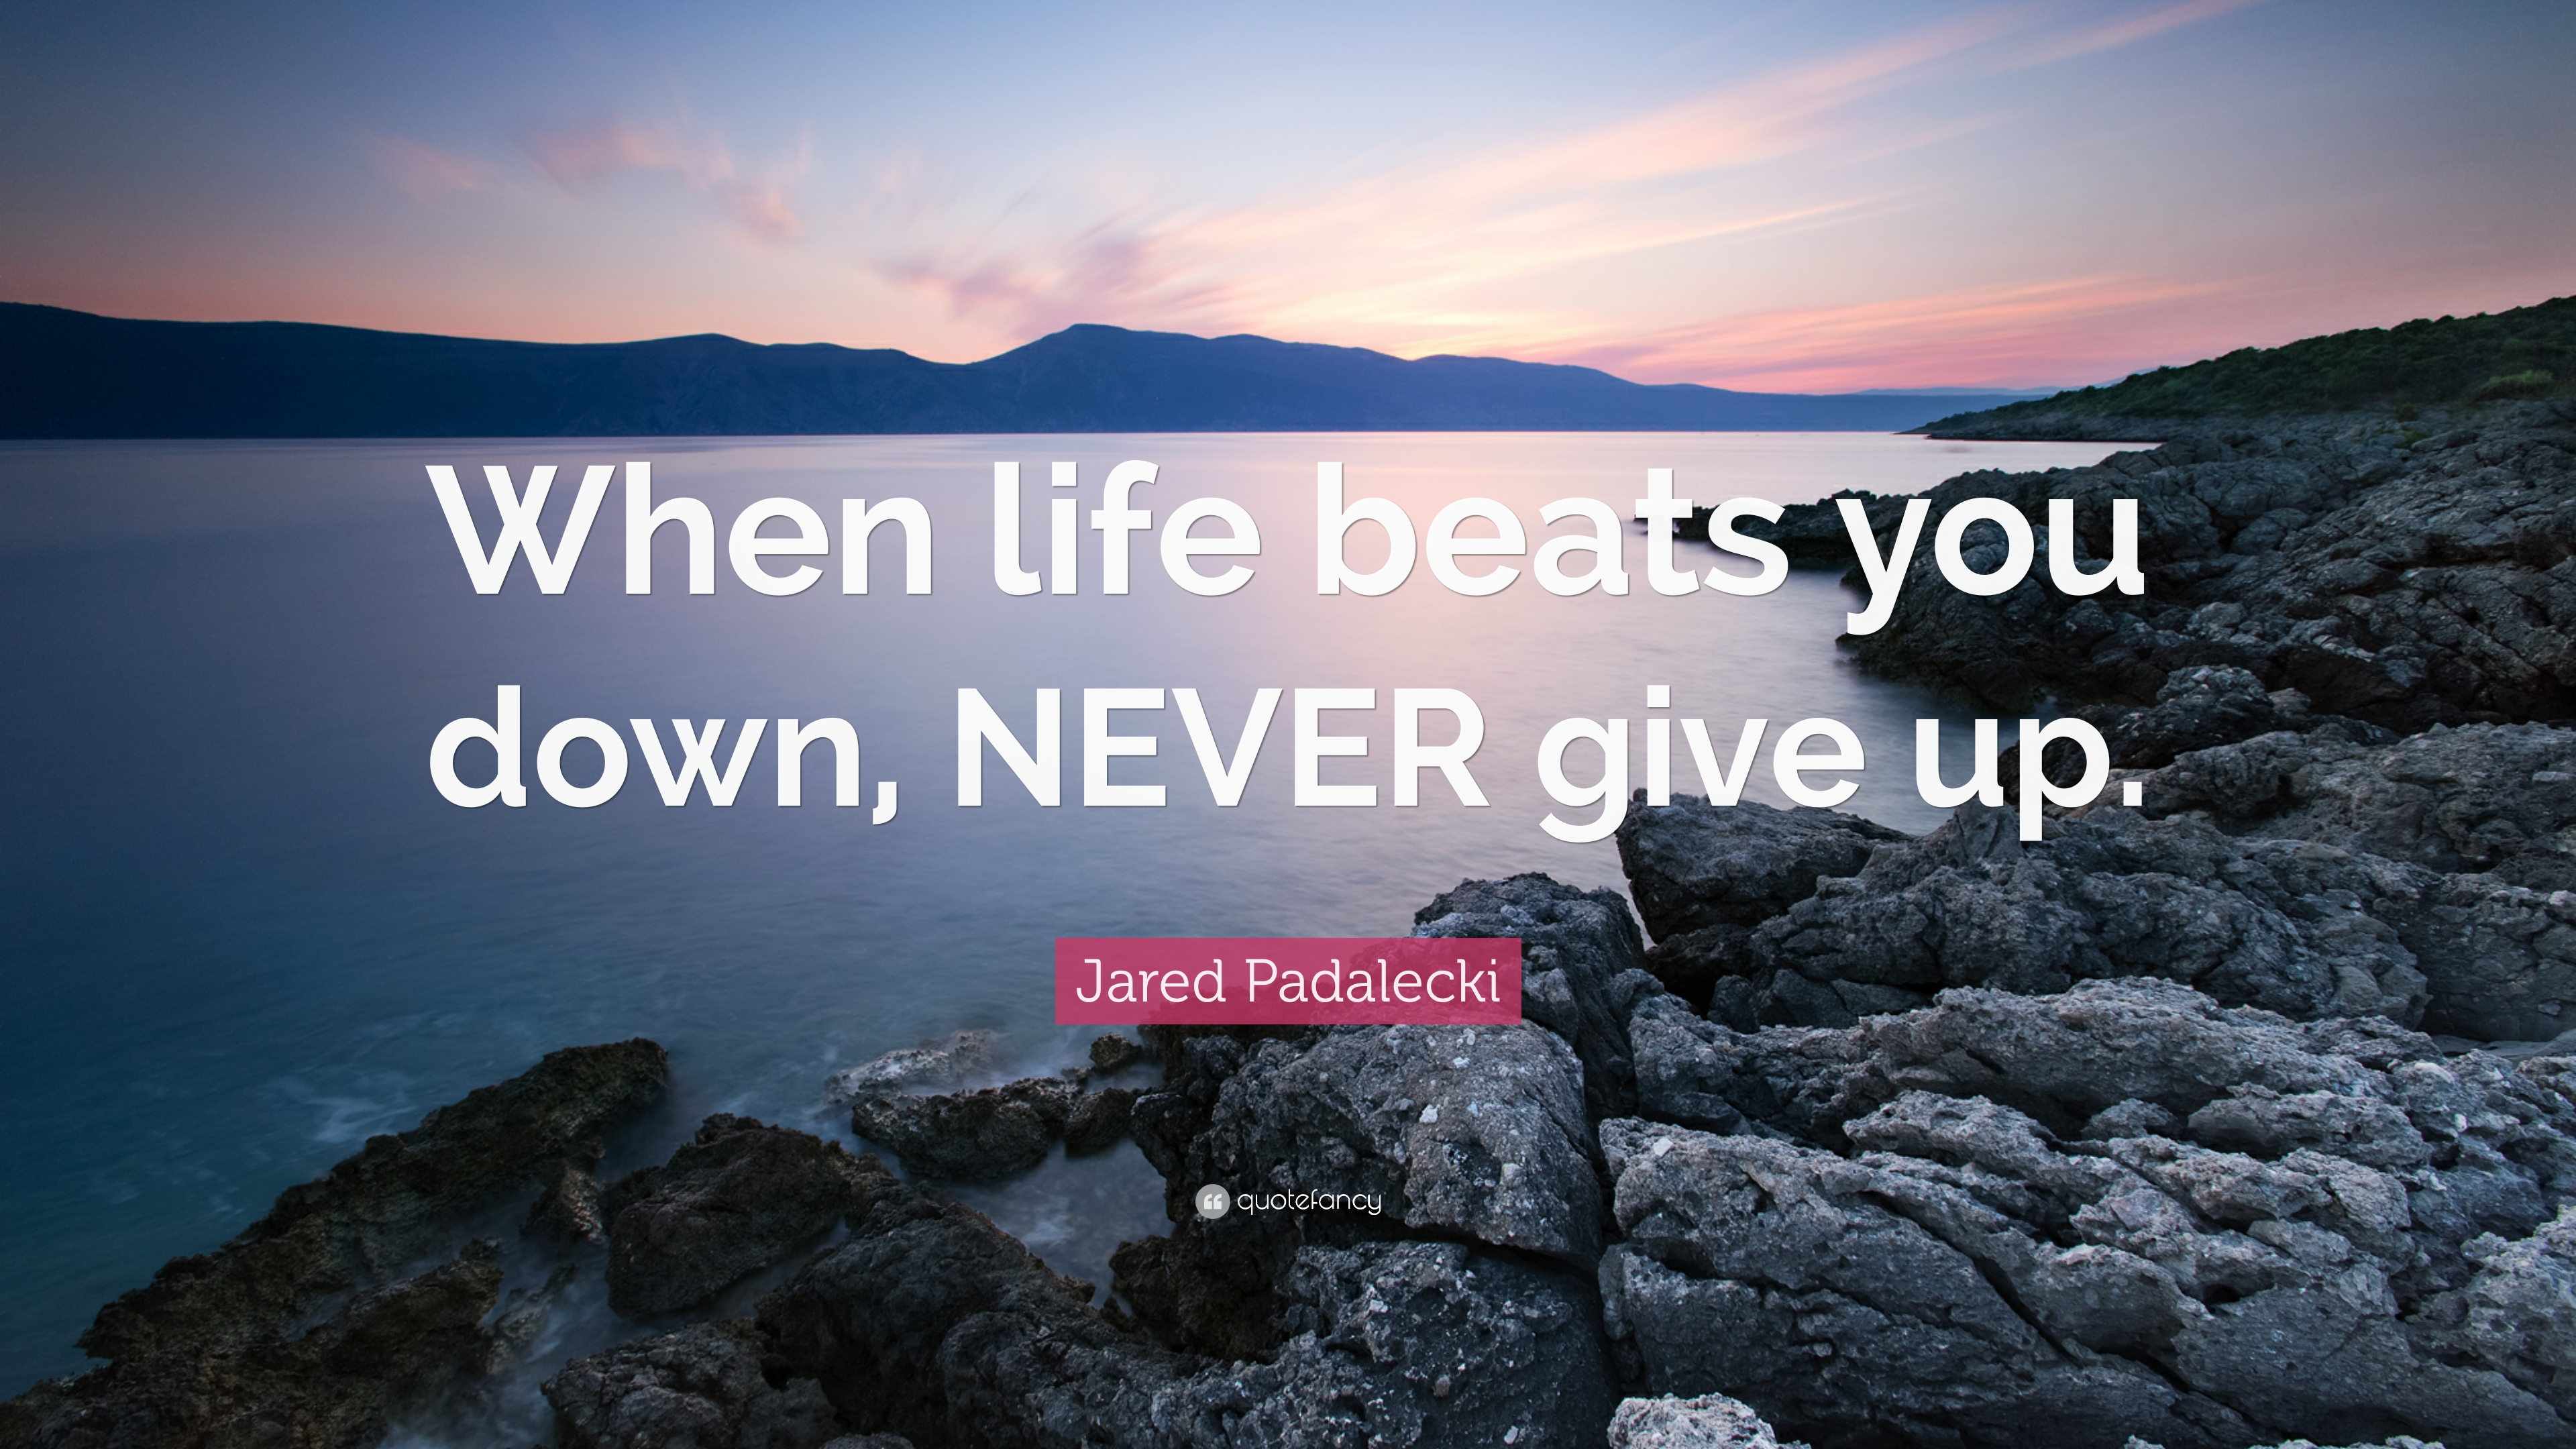 "Never Give Up On Life Quotes Jared Padalecki Quote ""When Life Beats You Down Never Give Up"